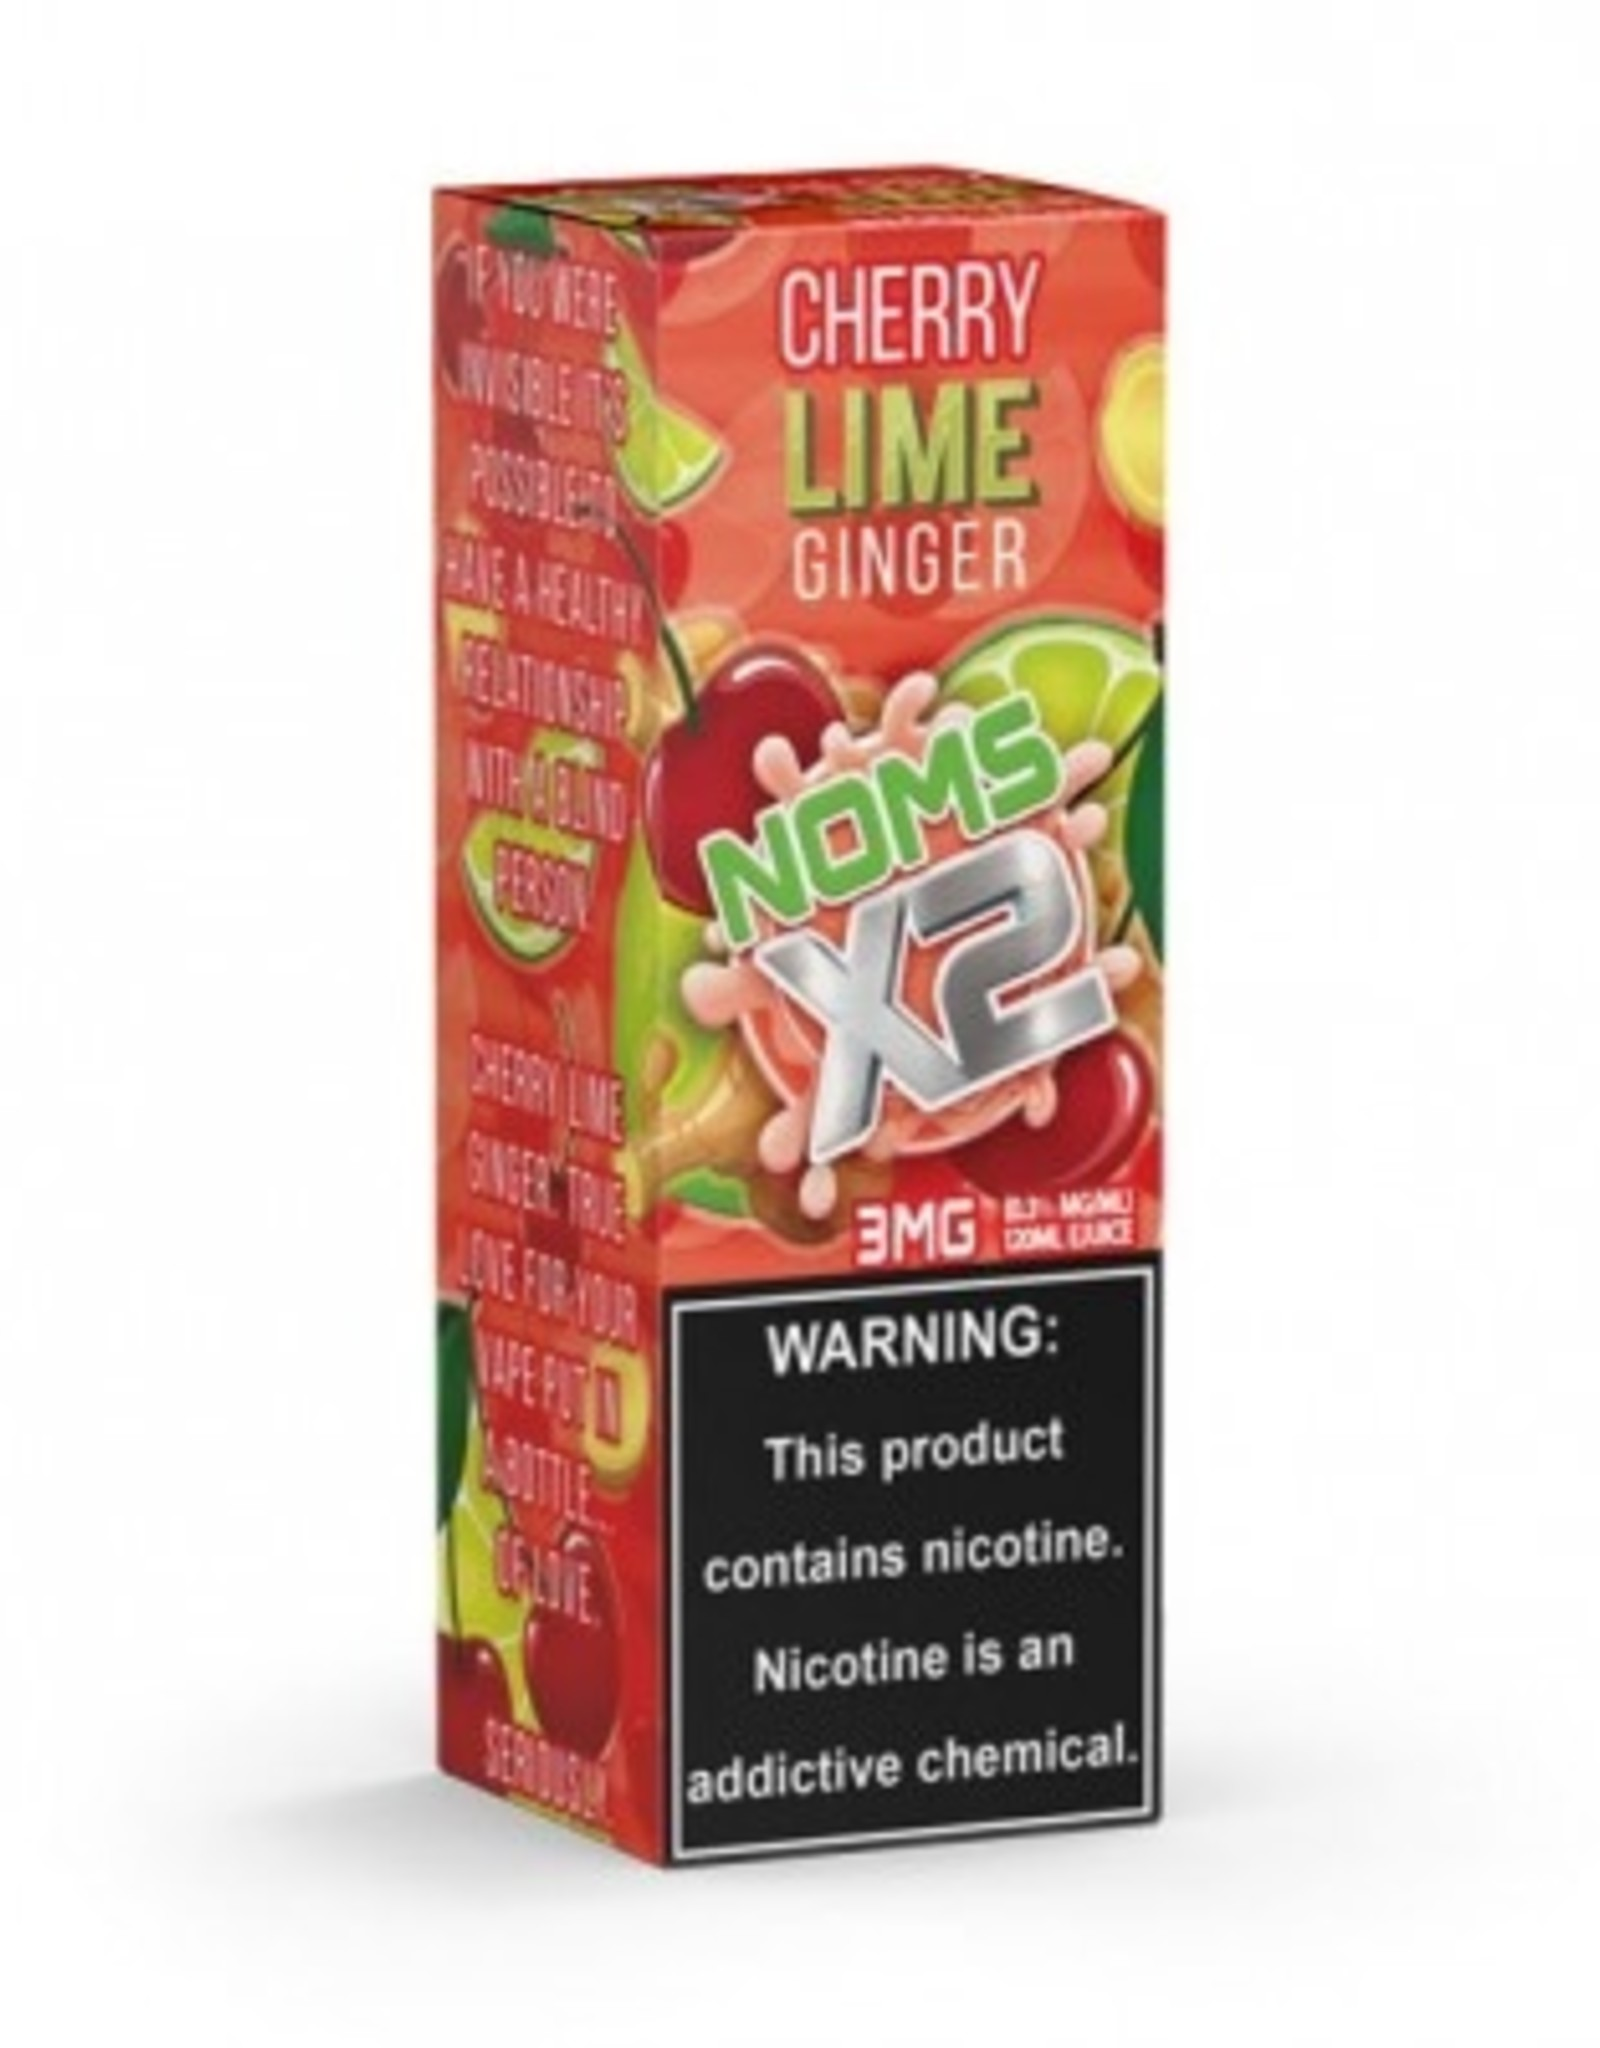 Nomenom Cherry Lime Ginger